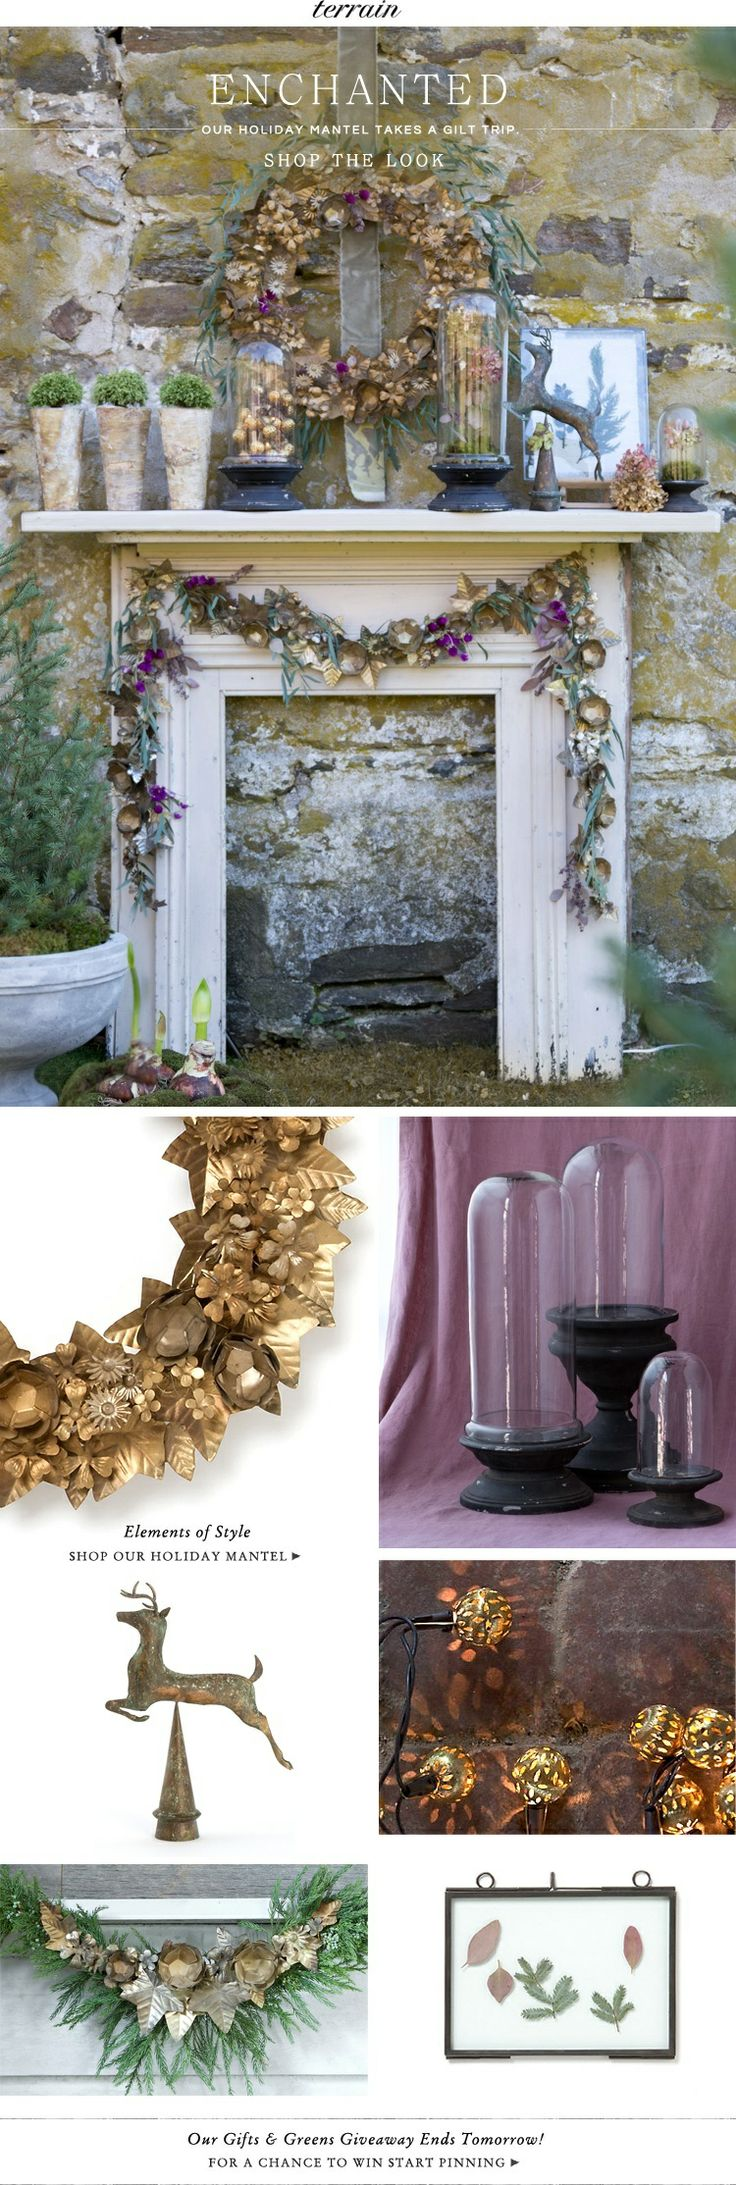 Our enchanted mantel takes a gilt trip.